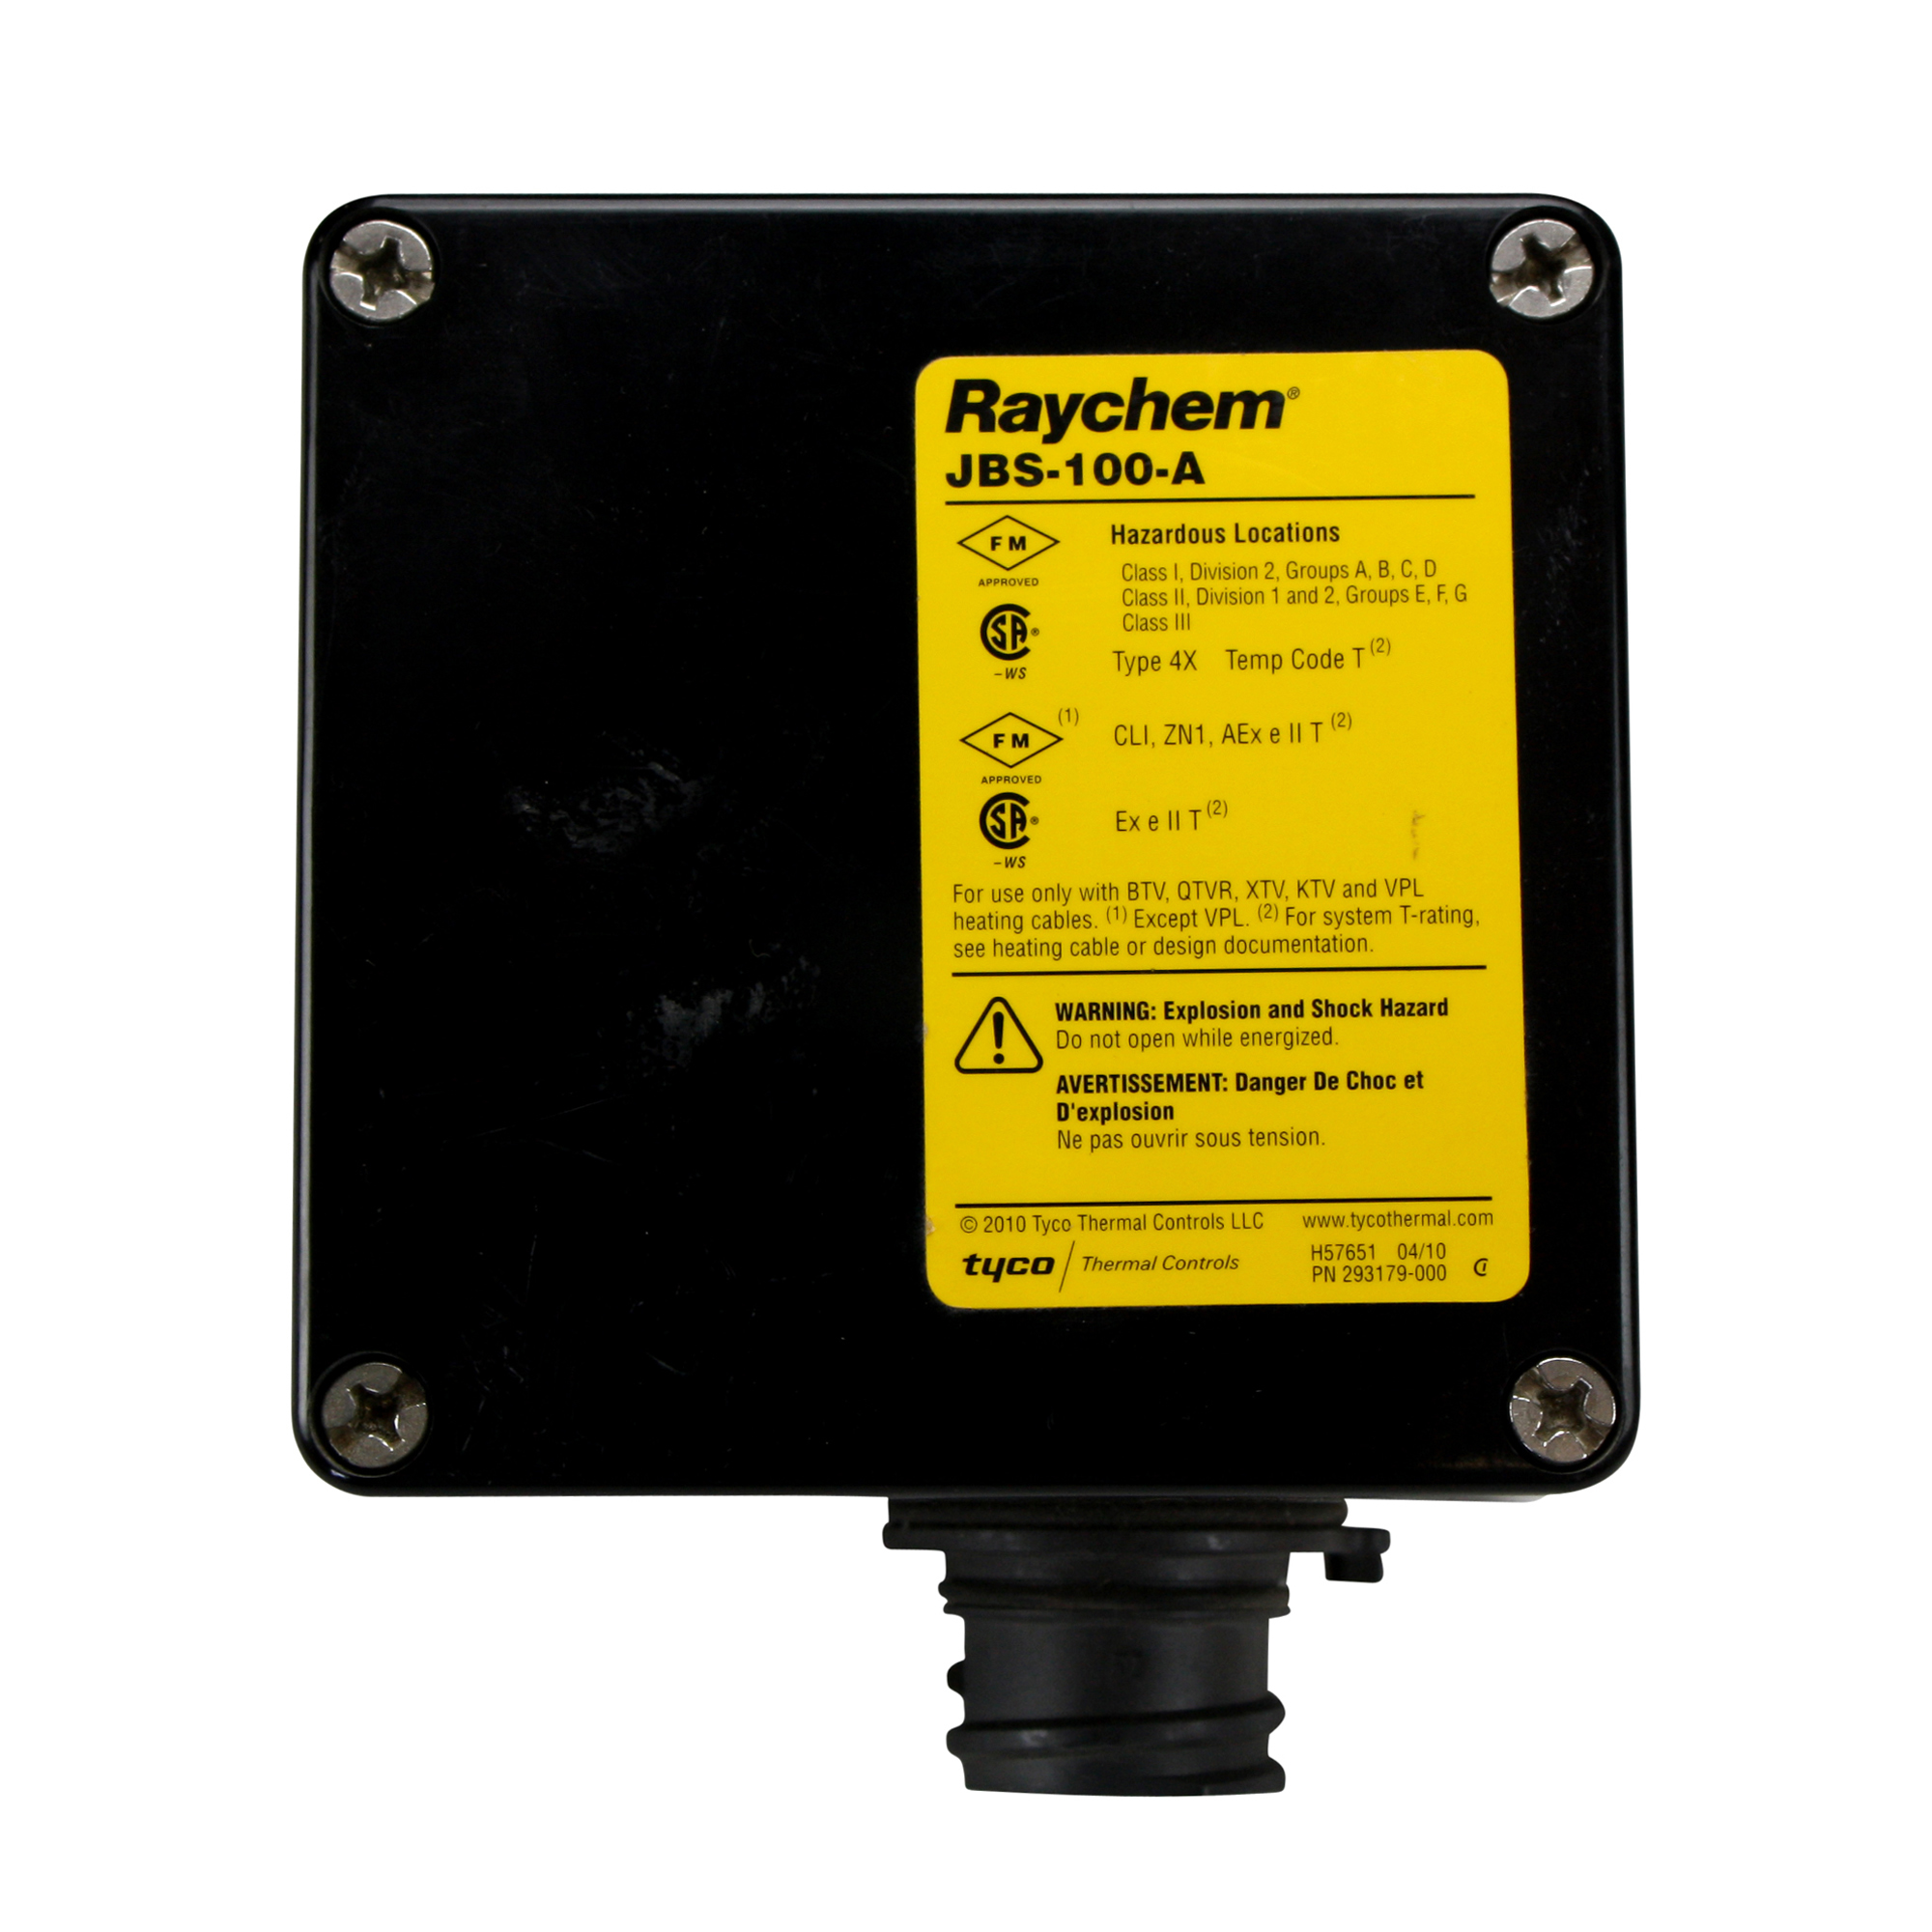 Raychem Tyco Jbs 100 A Heating Cable Power Connection